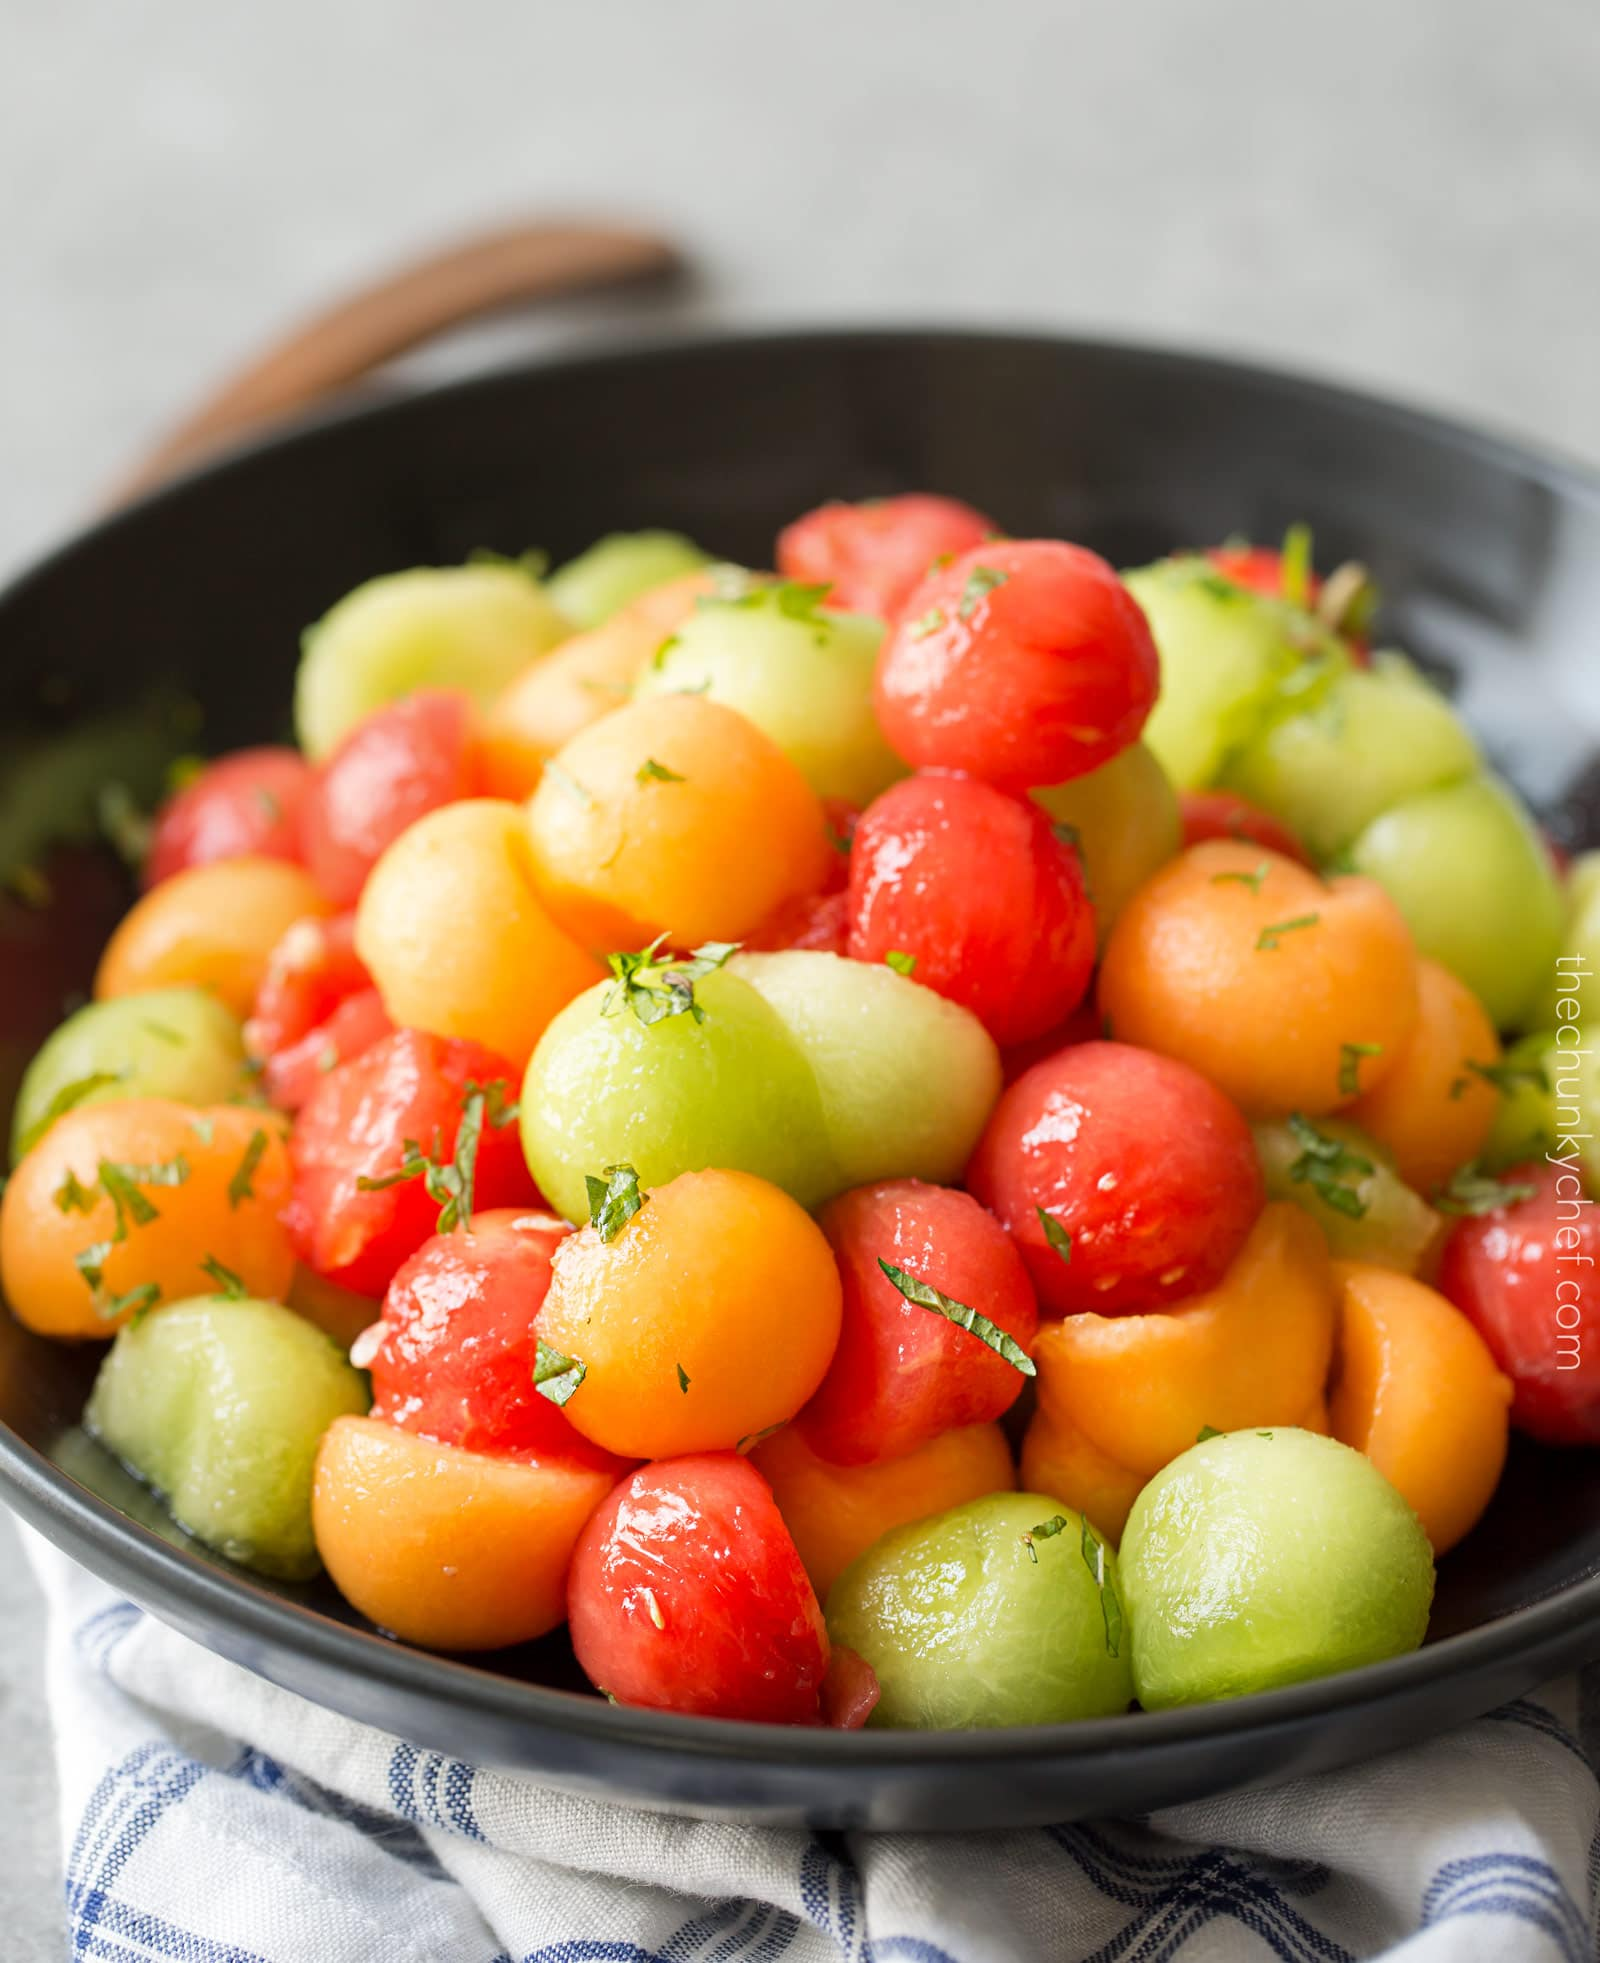 Summer Fruit Salad with Serrano Mint Syrup   A refreshing fruit salad made with a variety of summer fruits, tossed in an easy simple syrup made with mint and serrano pepper!   http://thechunkychef.com